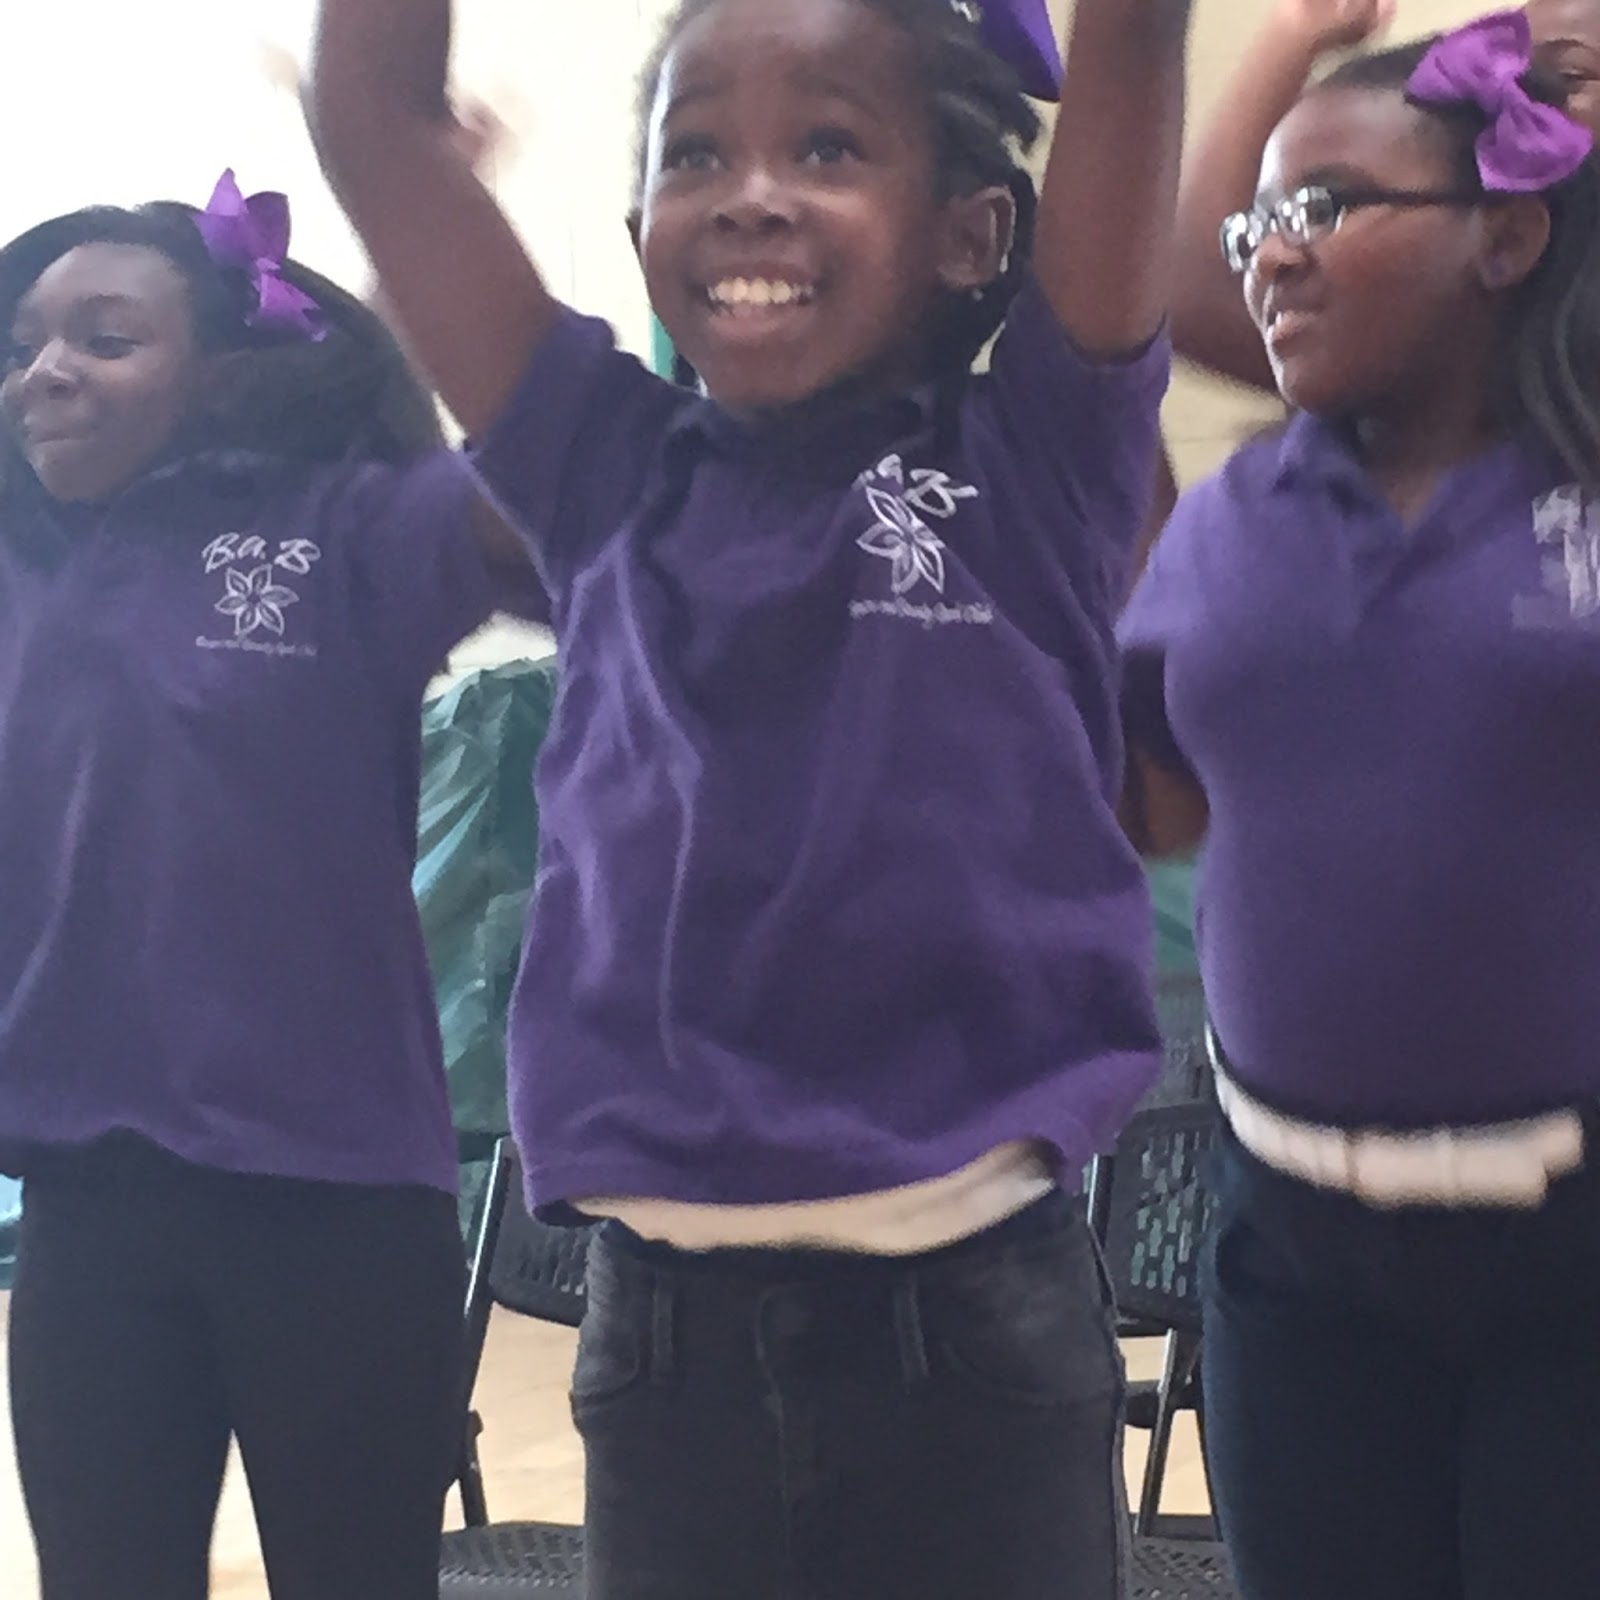 Programs That Work Brains And Beauty Girls Club Shaping Unruly Girls Into Responsible Self